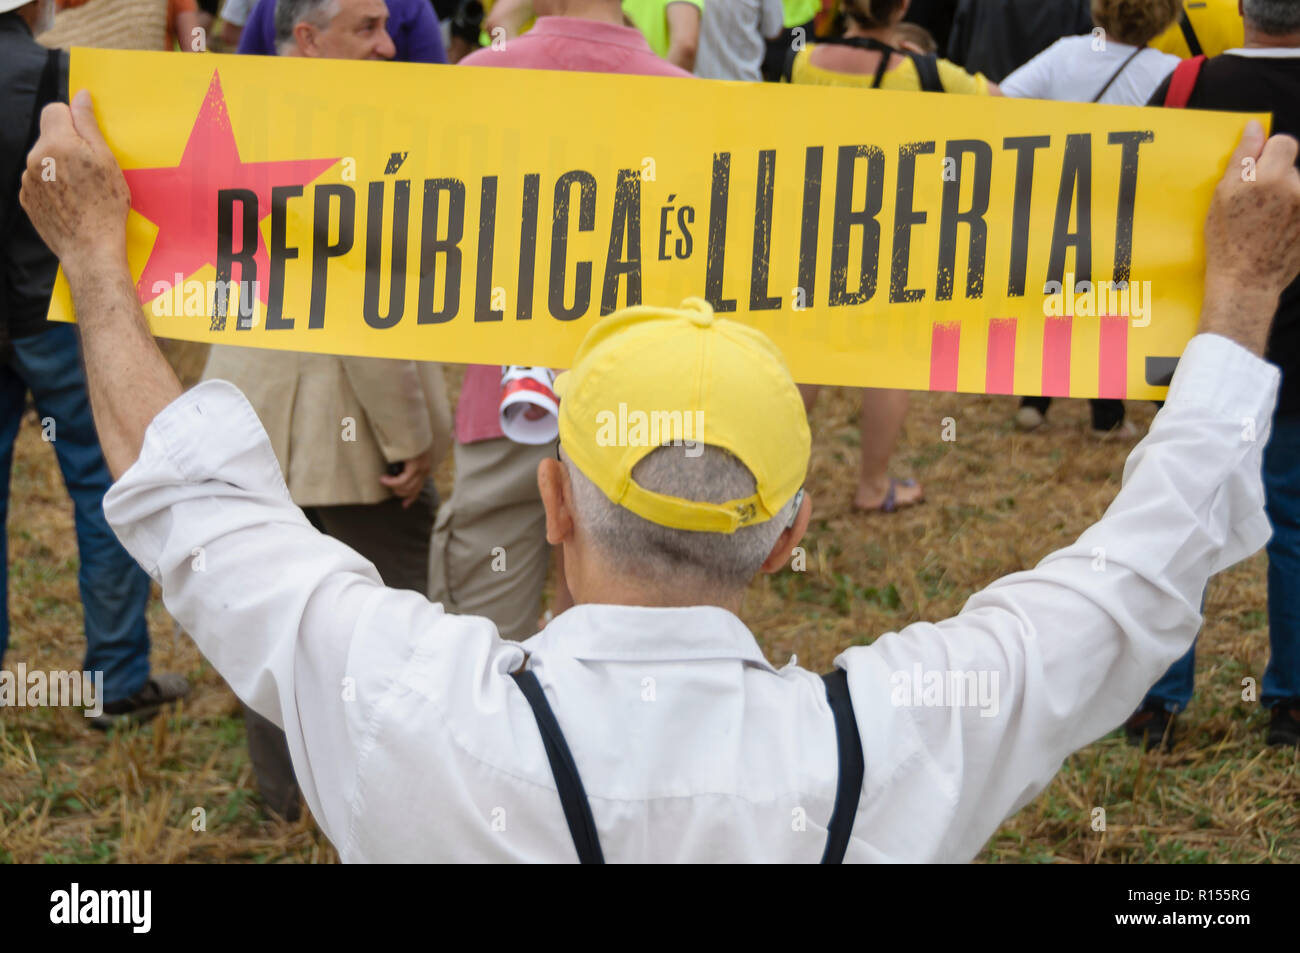 Demonstrators demanding freedom from political prisoners, Lledoners, Catalonia, Spain Stock Photo